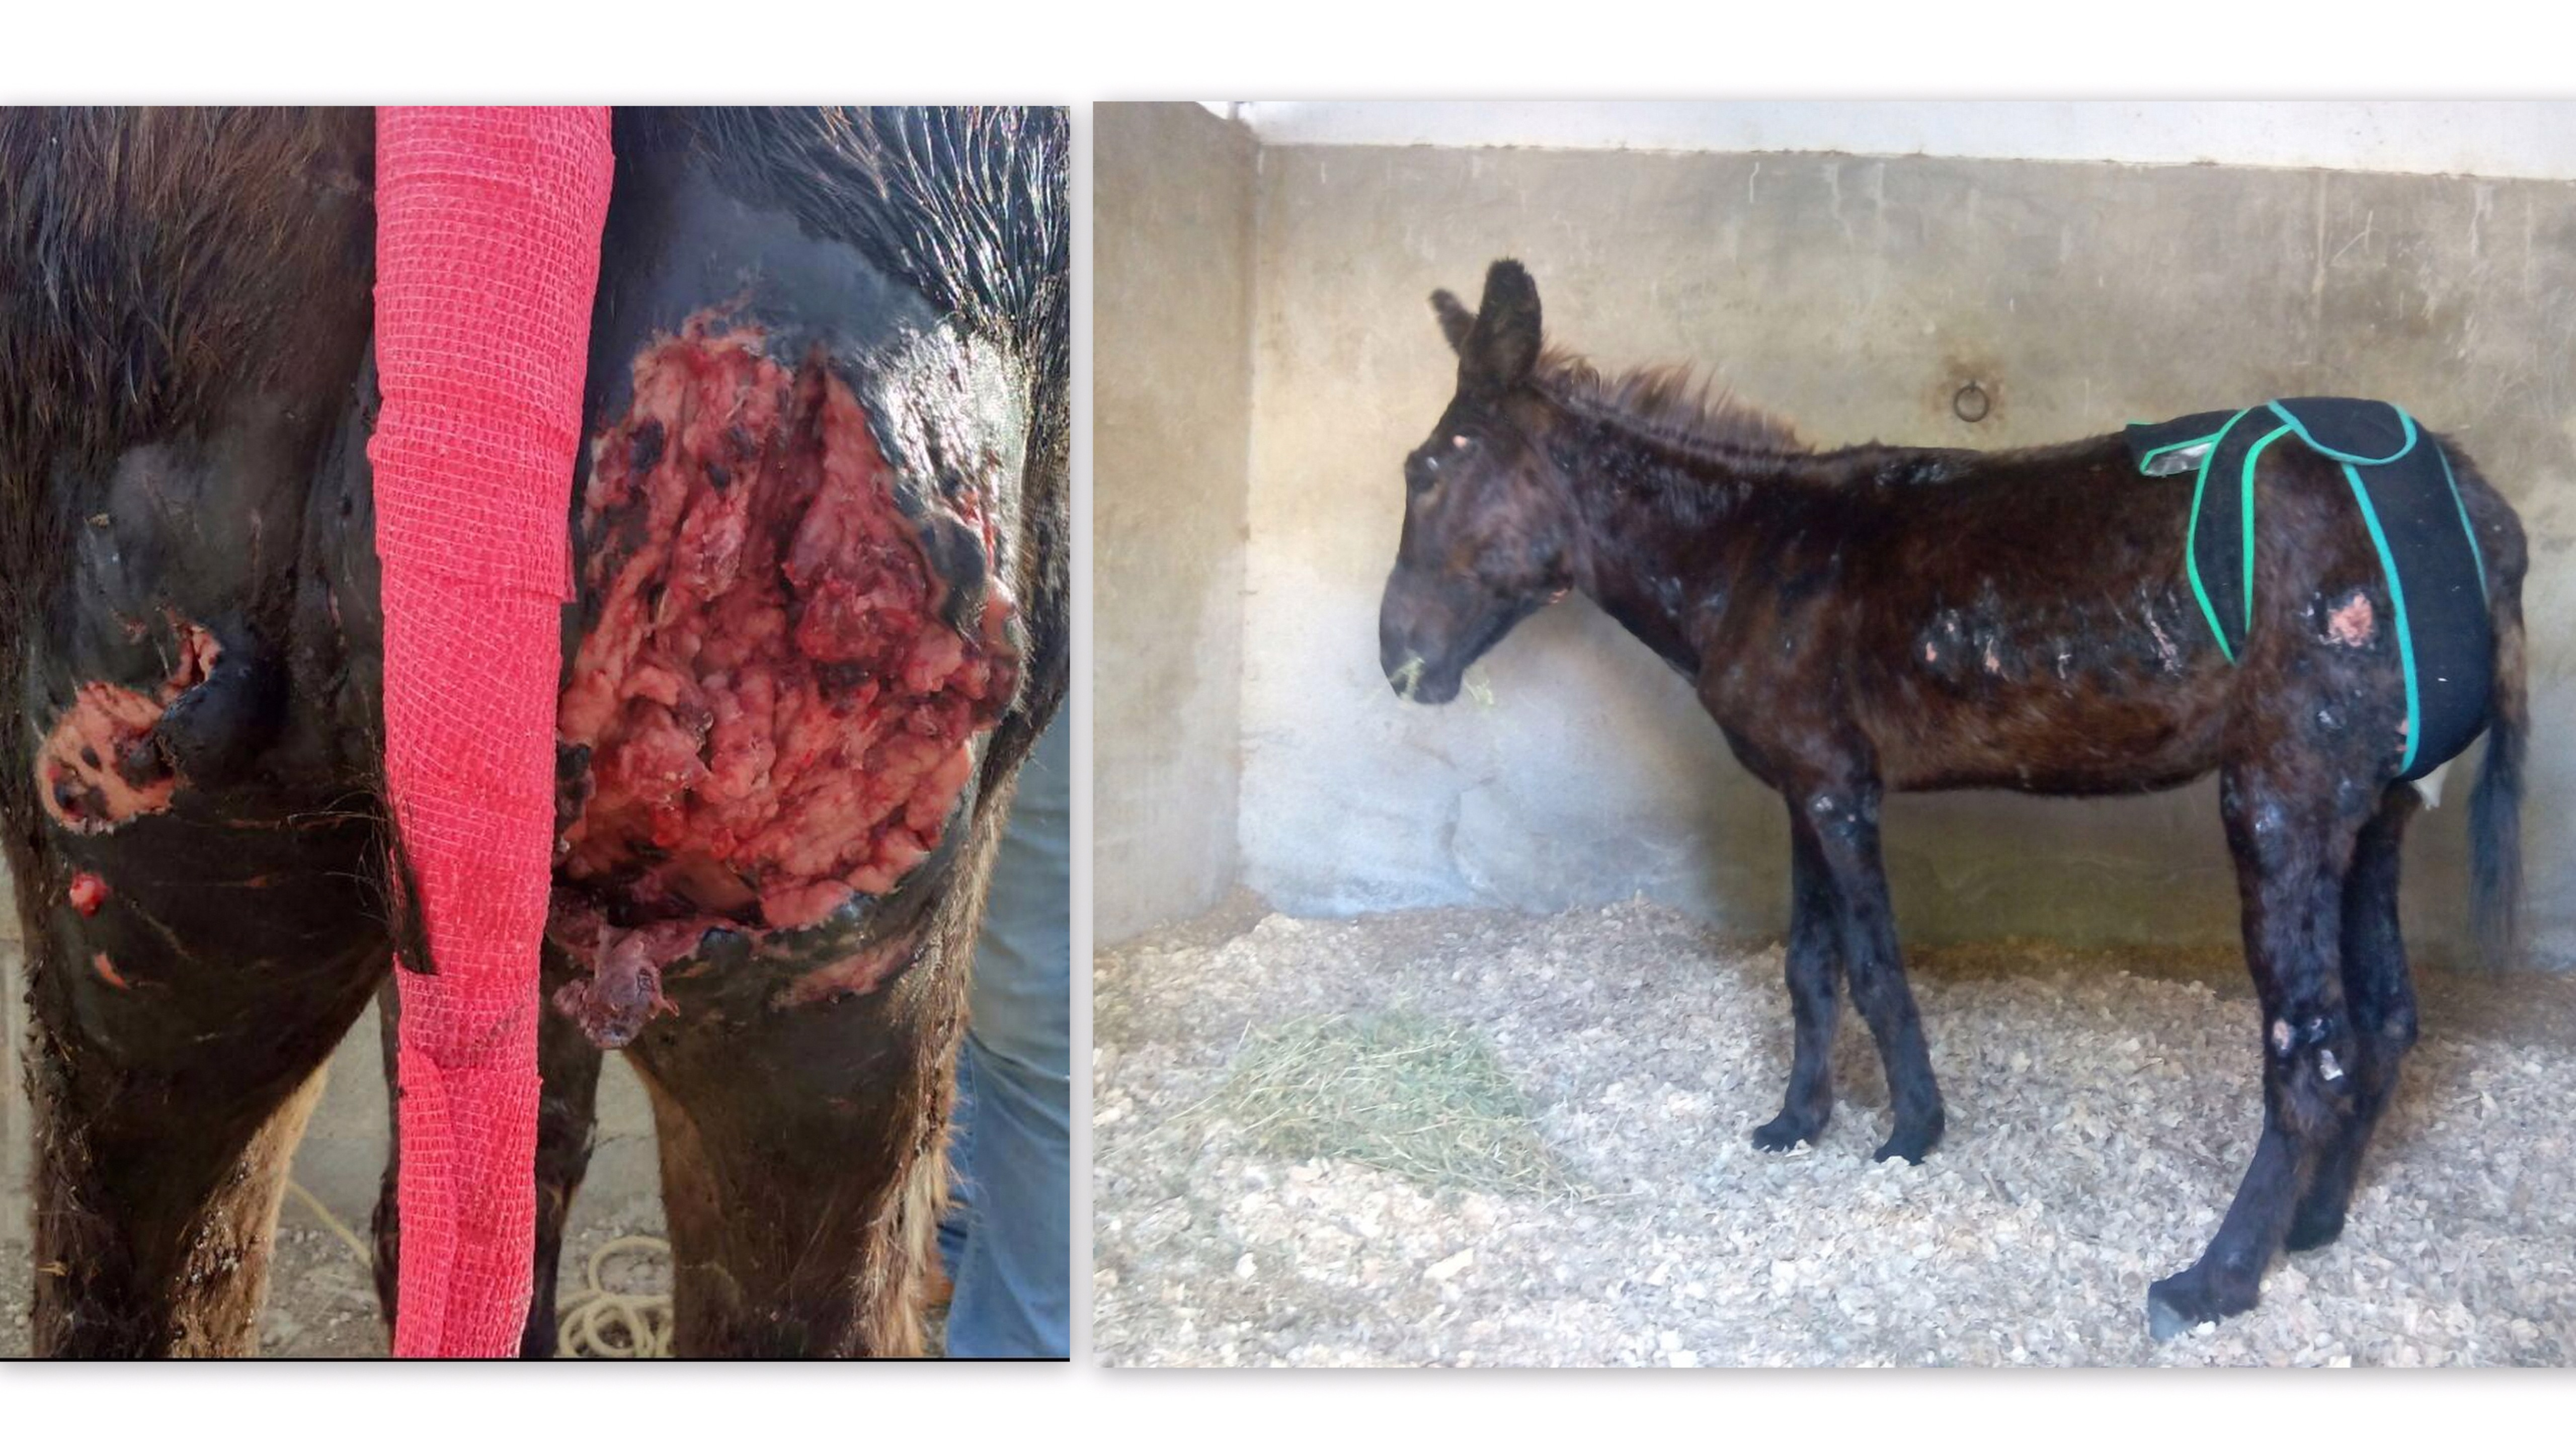 She had open and infected wounds all over her body, mainly due to the bites of the dog